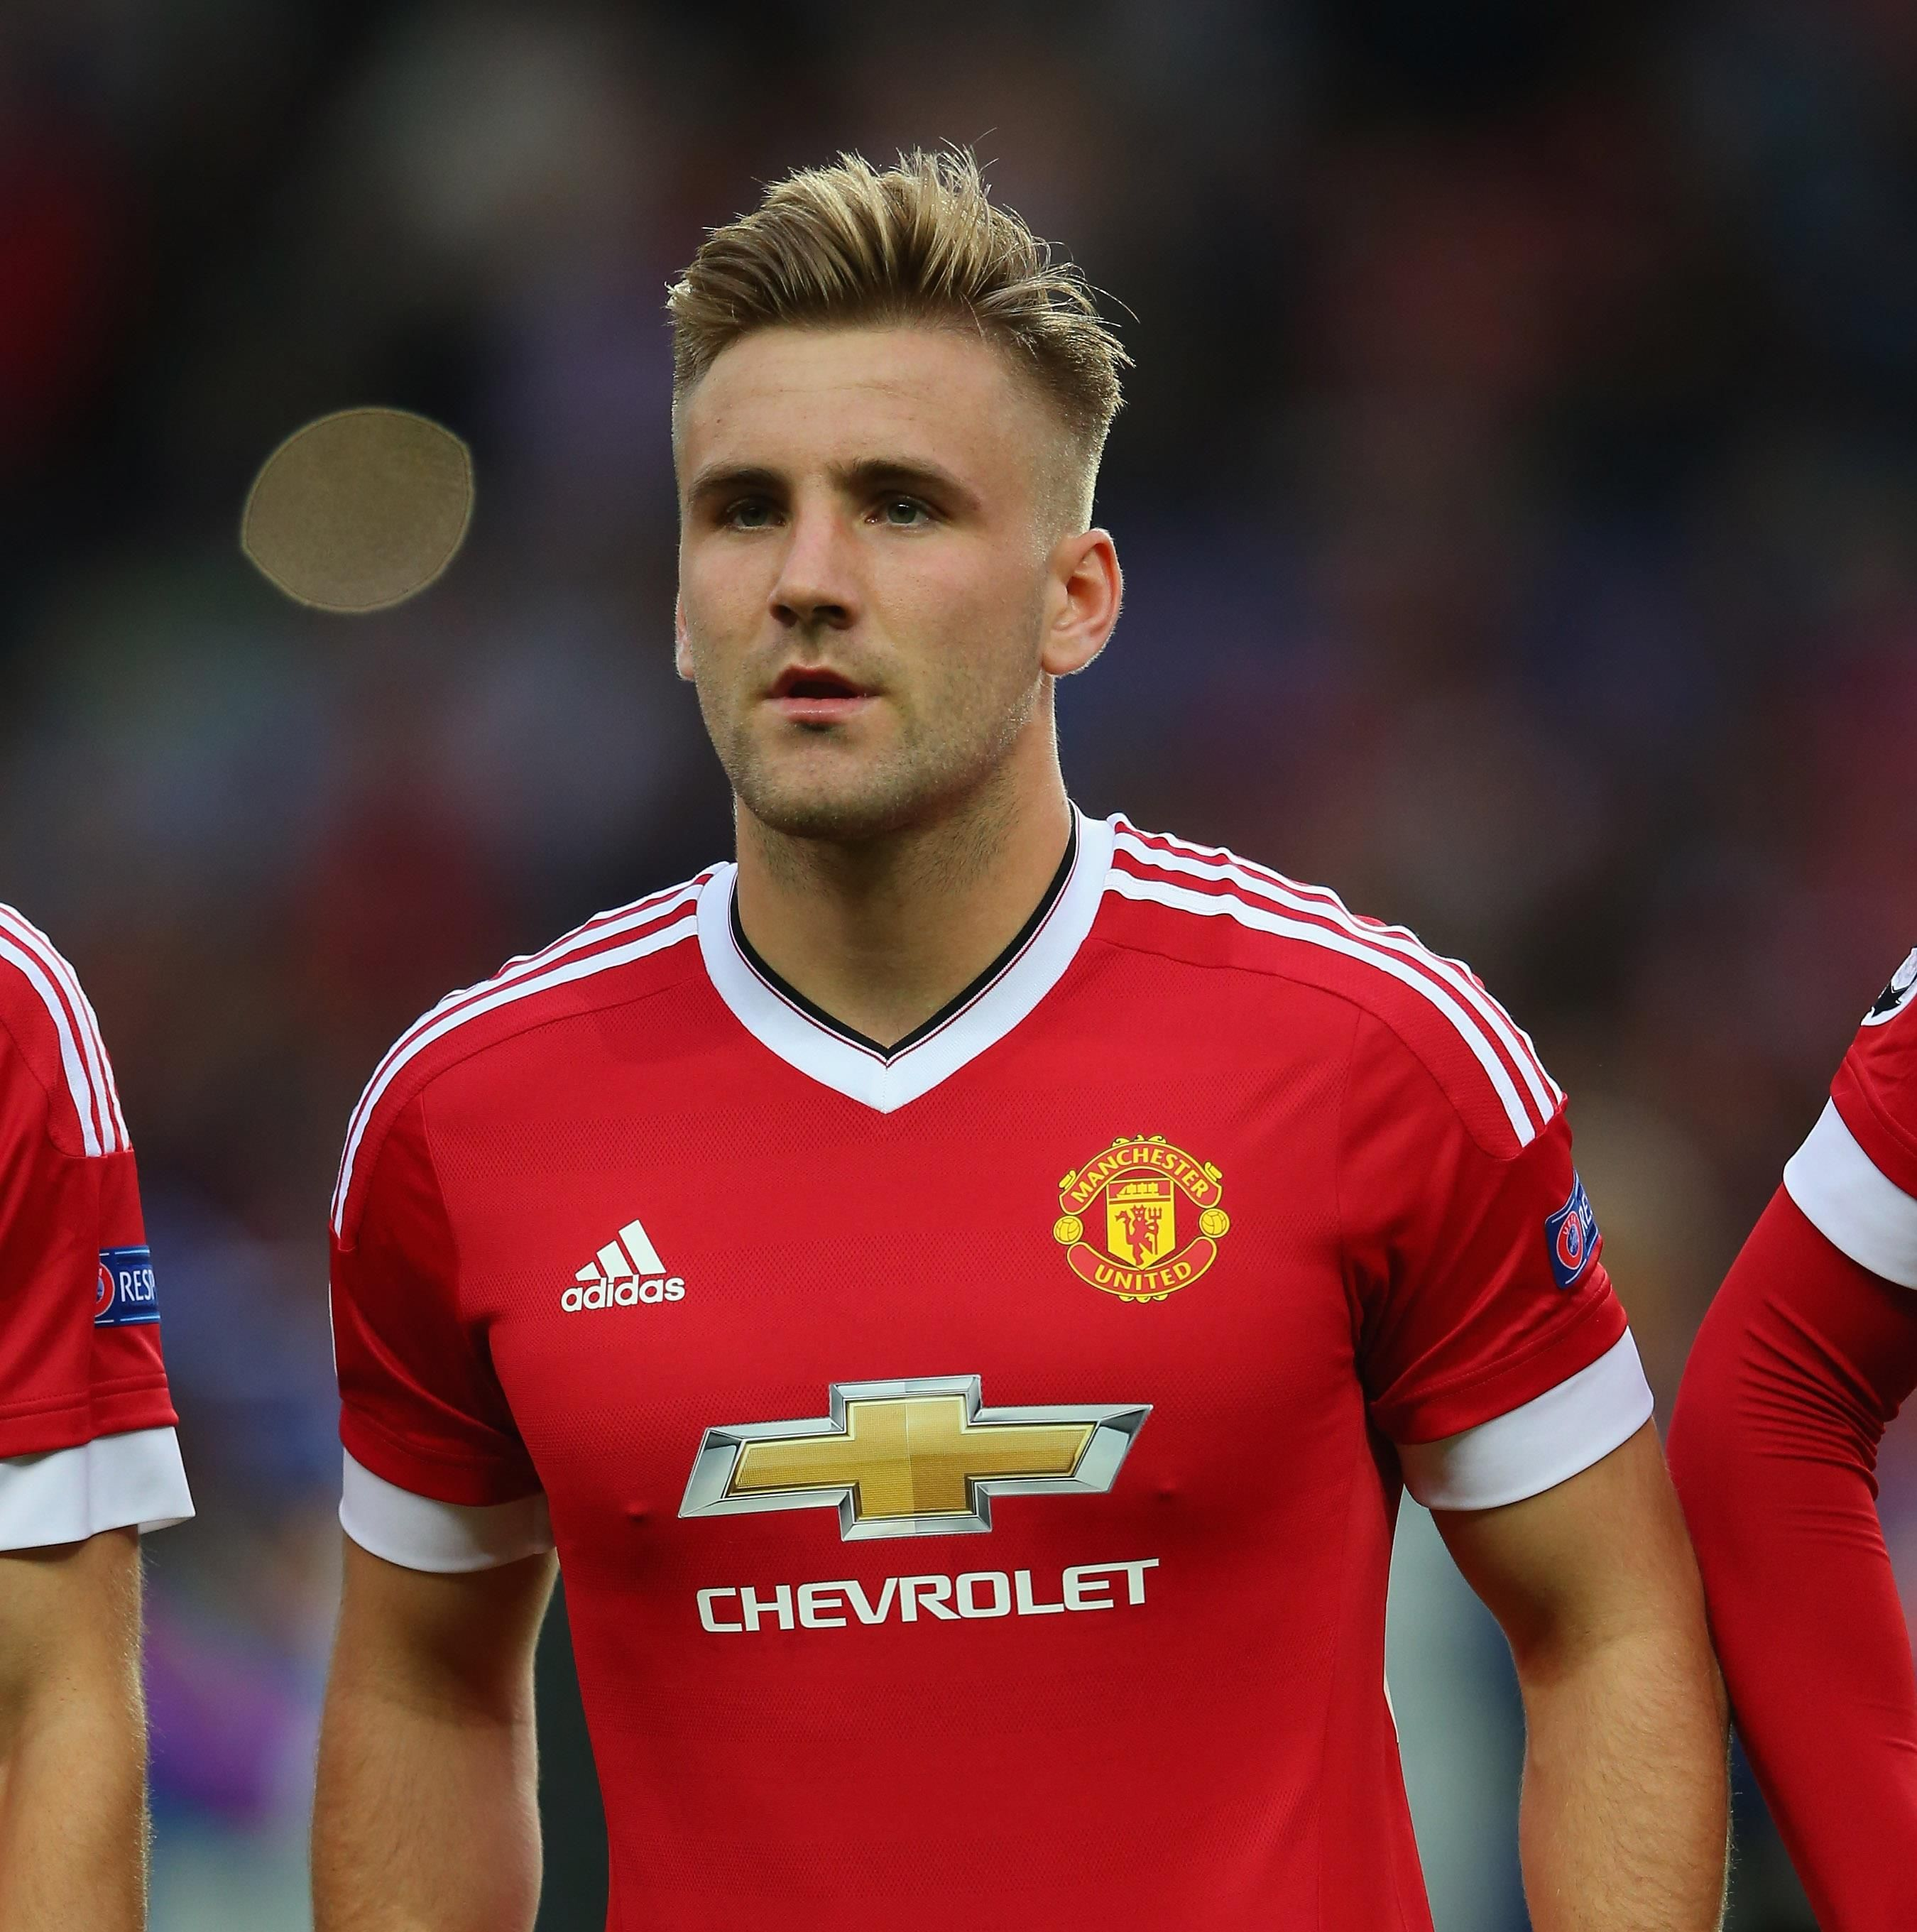 Sharp Fade And Volume On Top Great 2015 Hairstyle Idea From Luke Shaw Manutd Bong đa